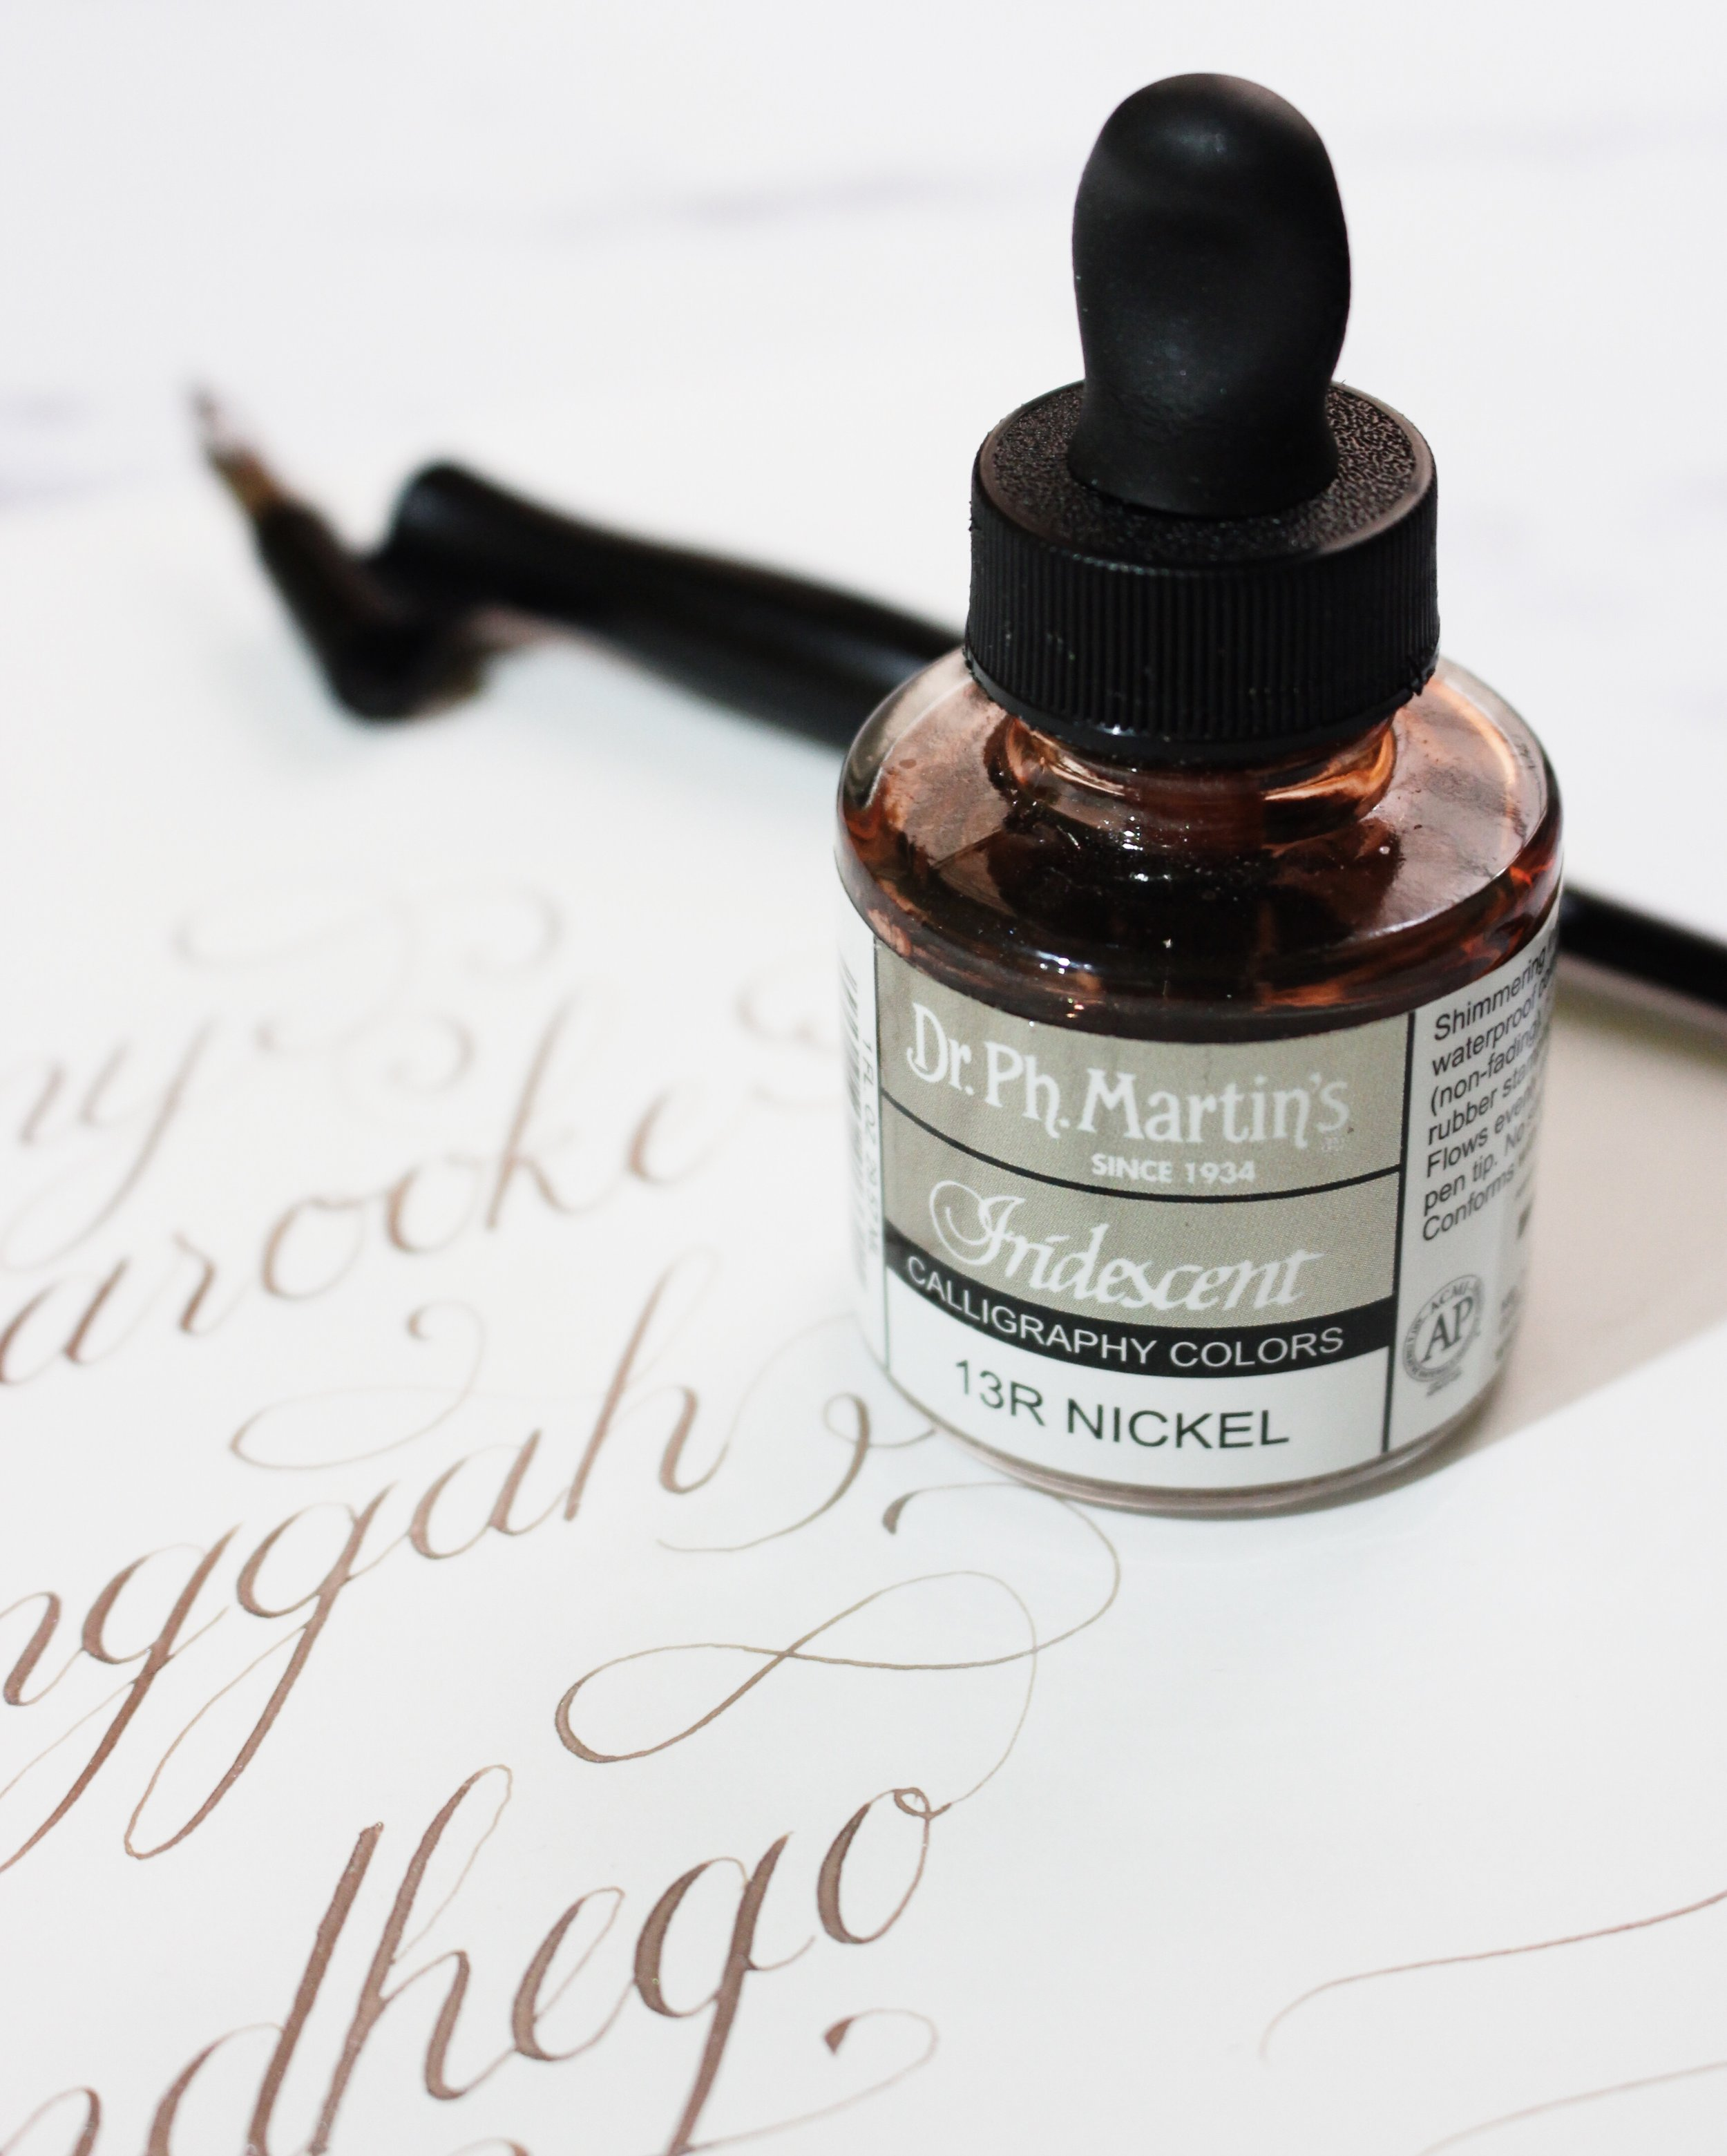 dr ph martin iridescent calligraphy colors